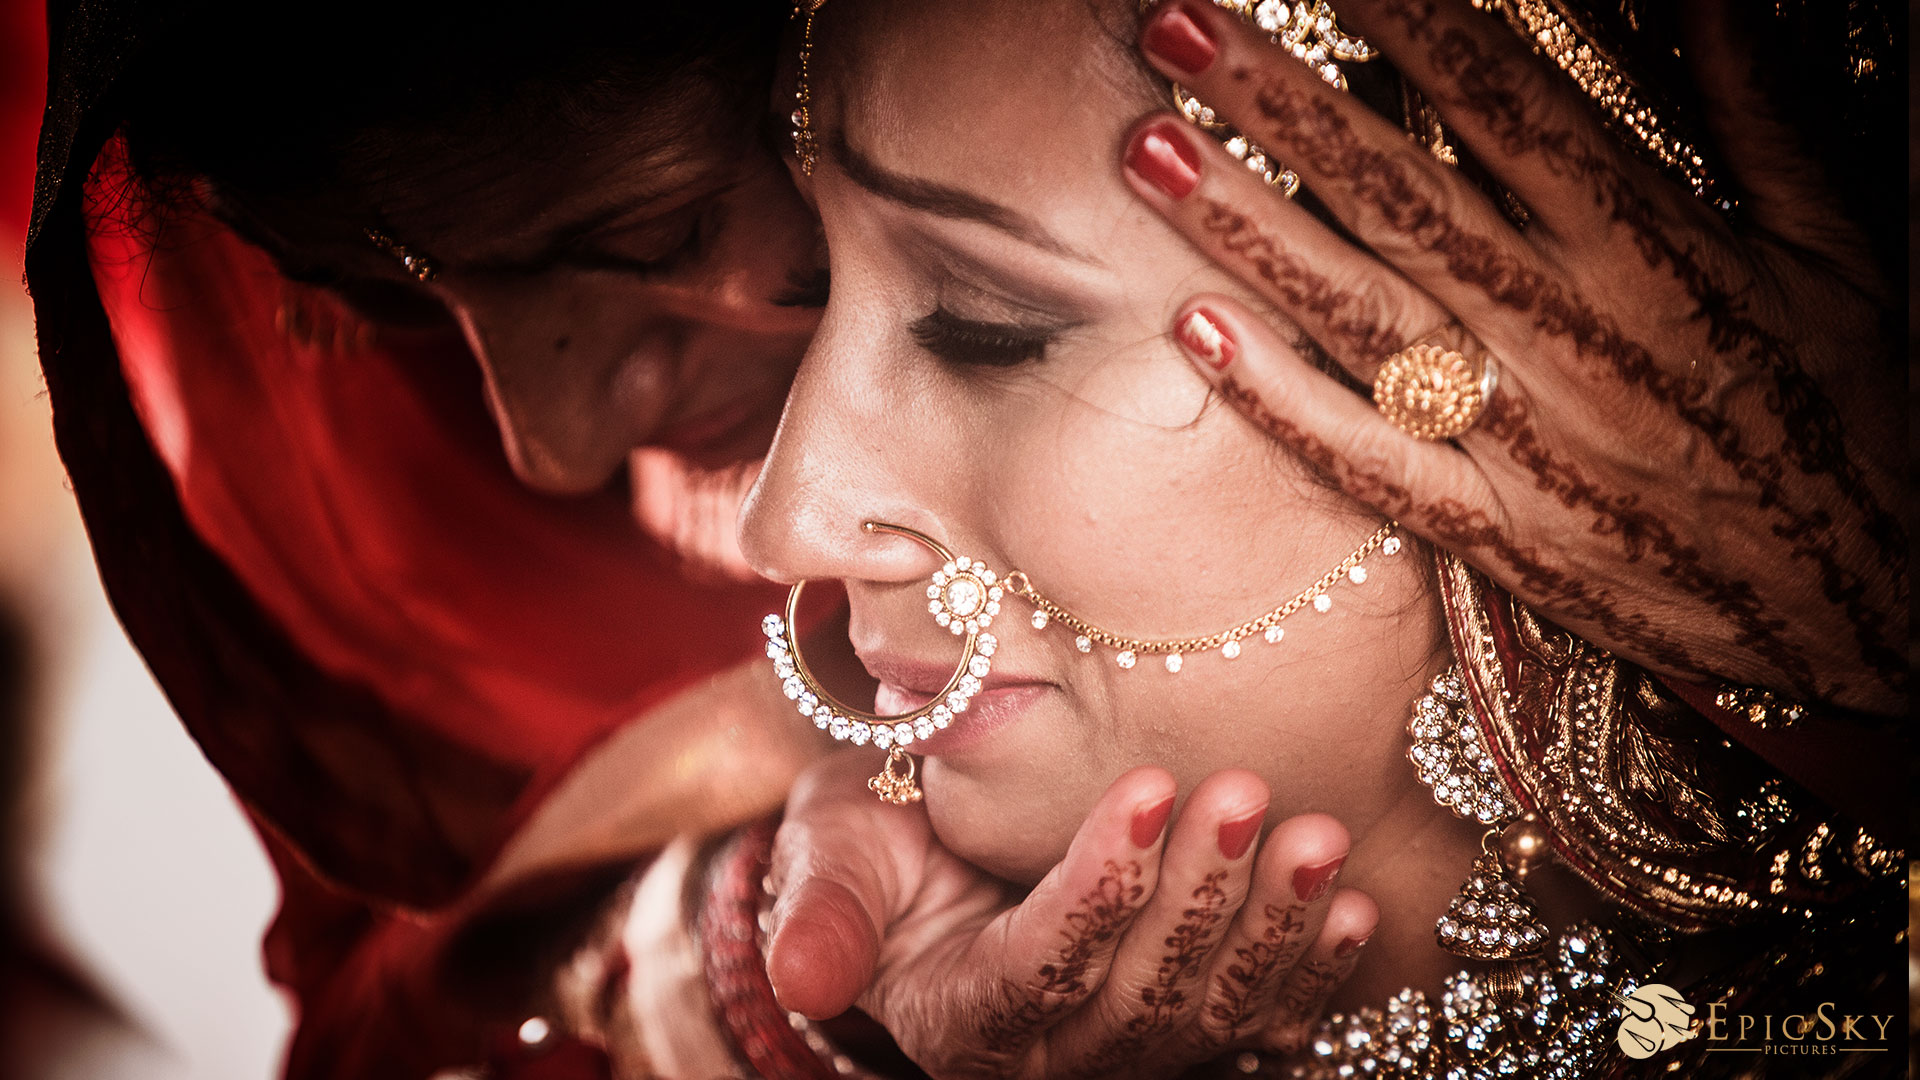 epic_sky_pictures_bridal_bangles_photography_accessories_wedding_weddingday_details_crying_sikh_doli_candid_wedding_newlife_farewell_departure